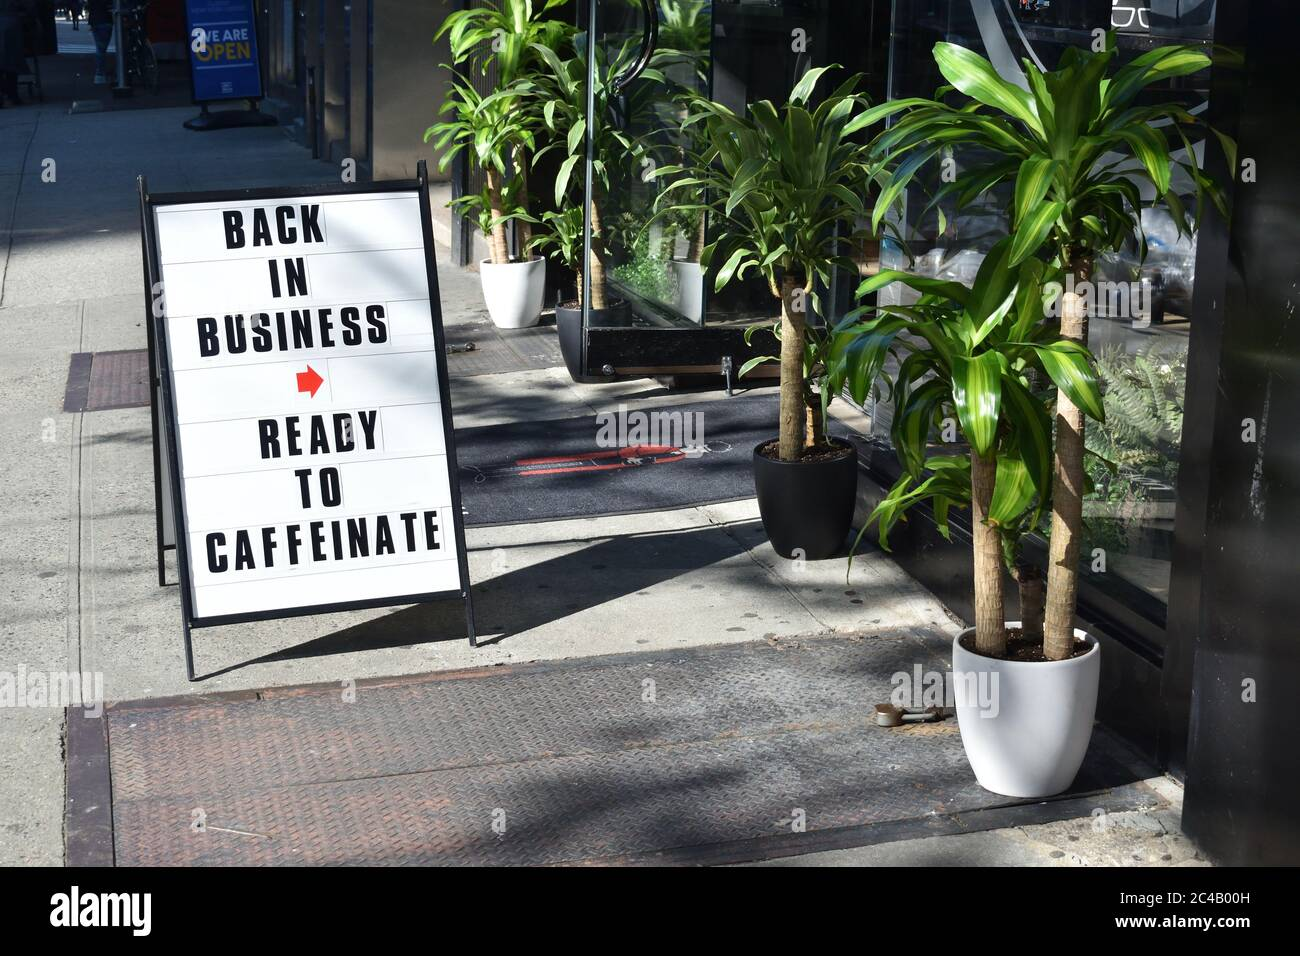 """A-frame sign reading """"Back In Business Ready To Caffeinate"""" on a city sidewalk outside a coffee shop with potted plants, May 7, 2020, in New York. Stock Photo"""